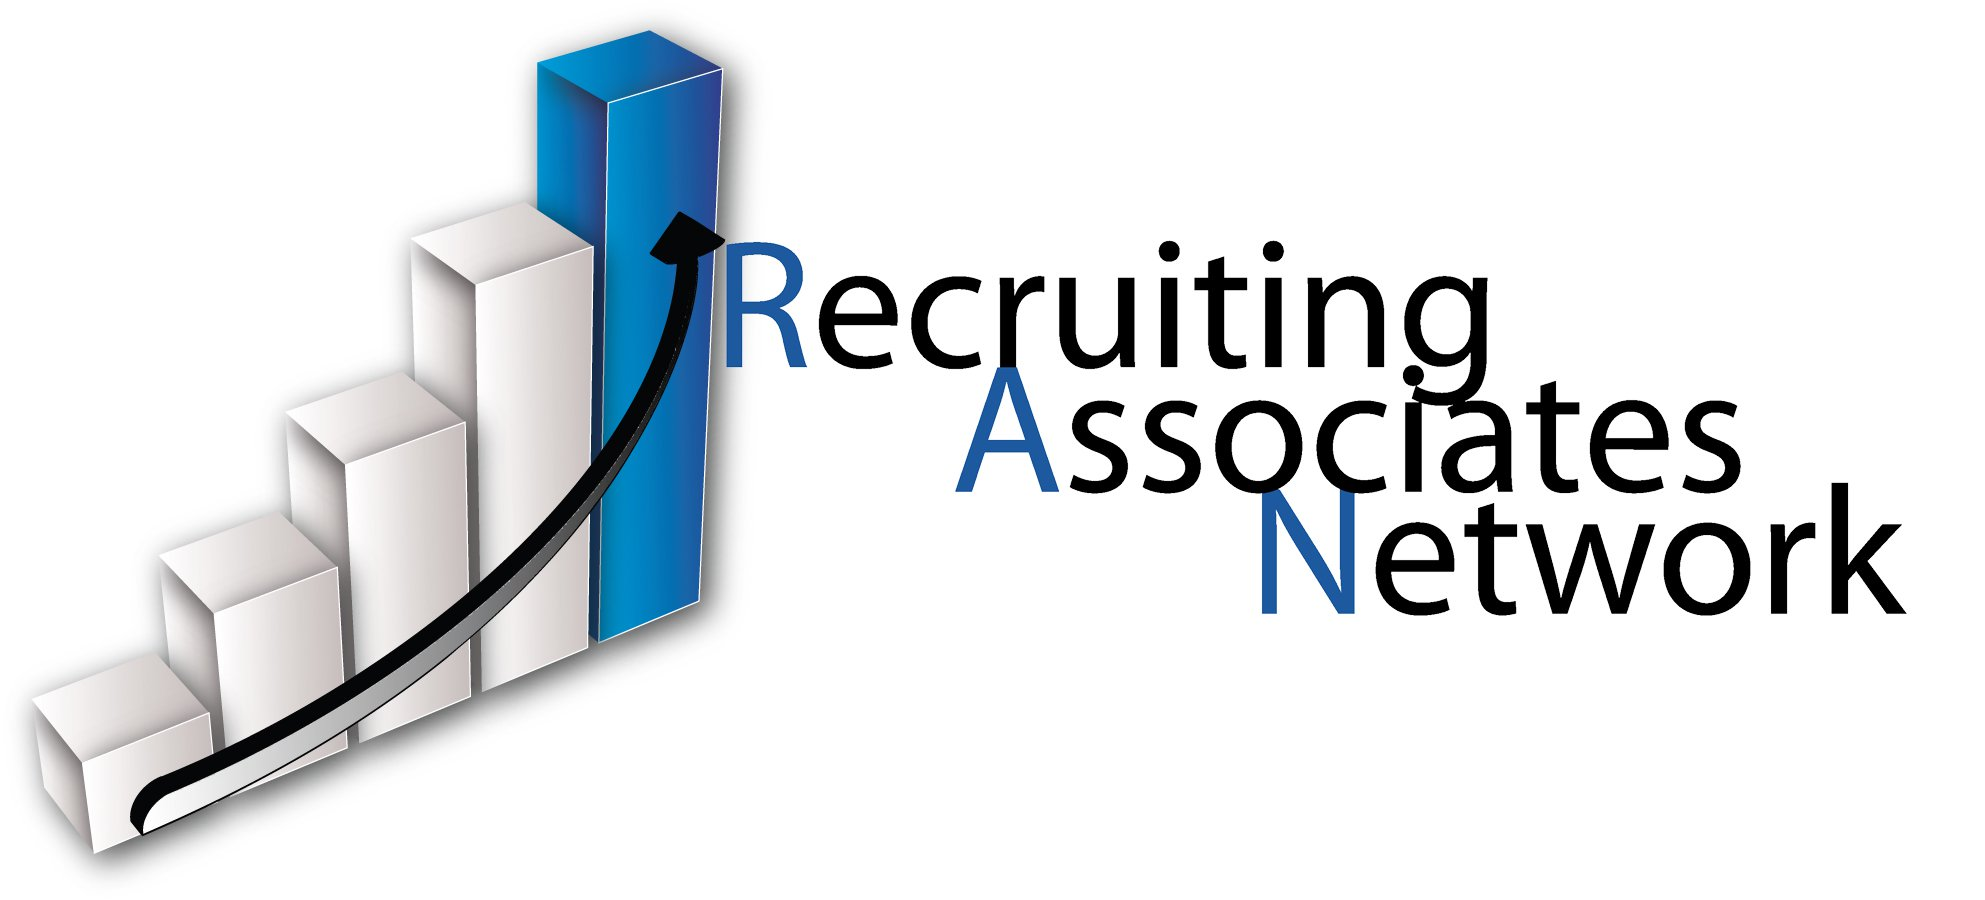 Recruiting Associates Network